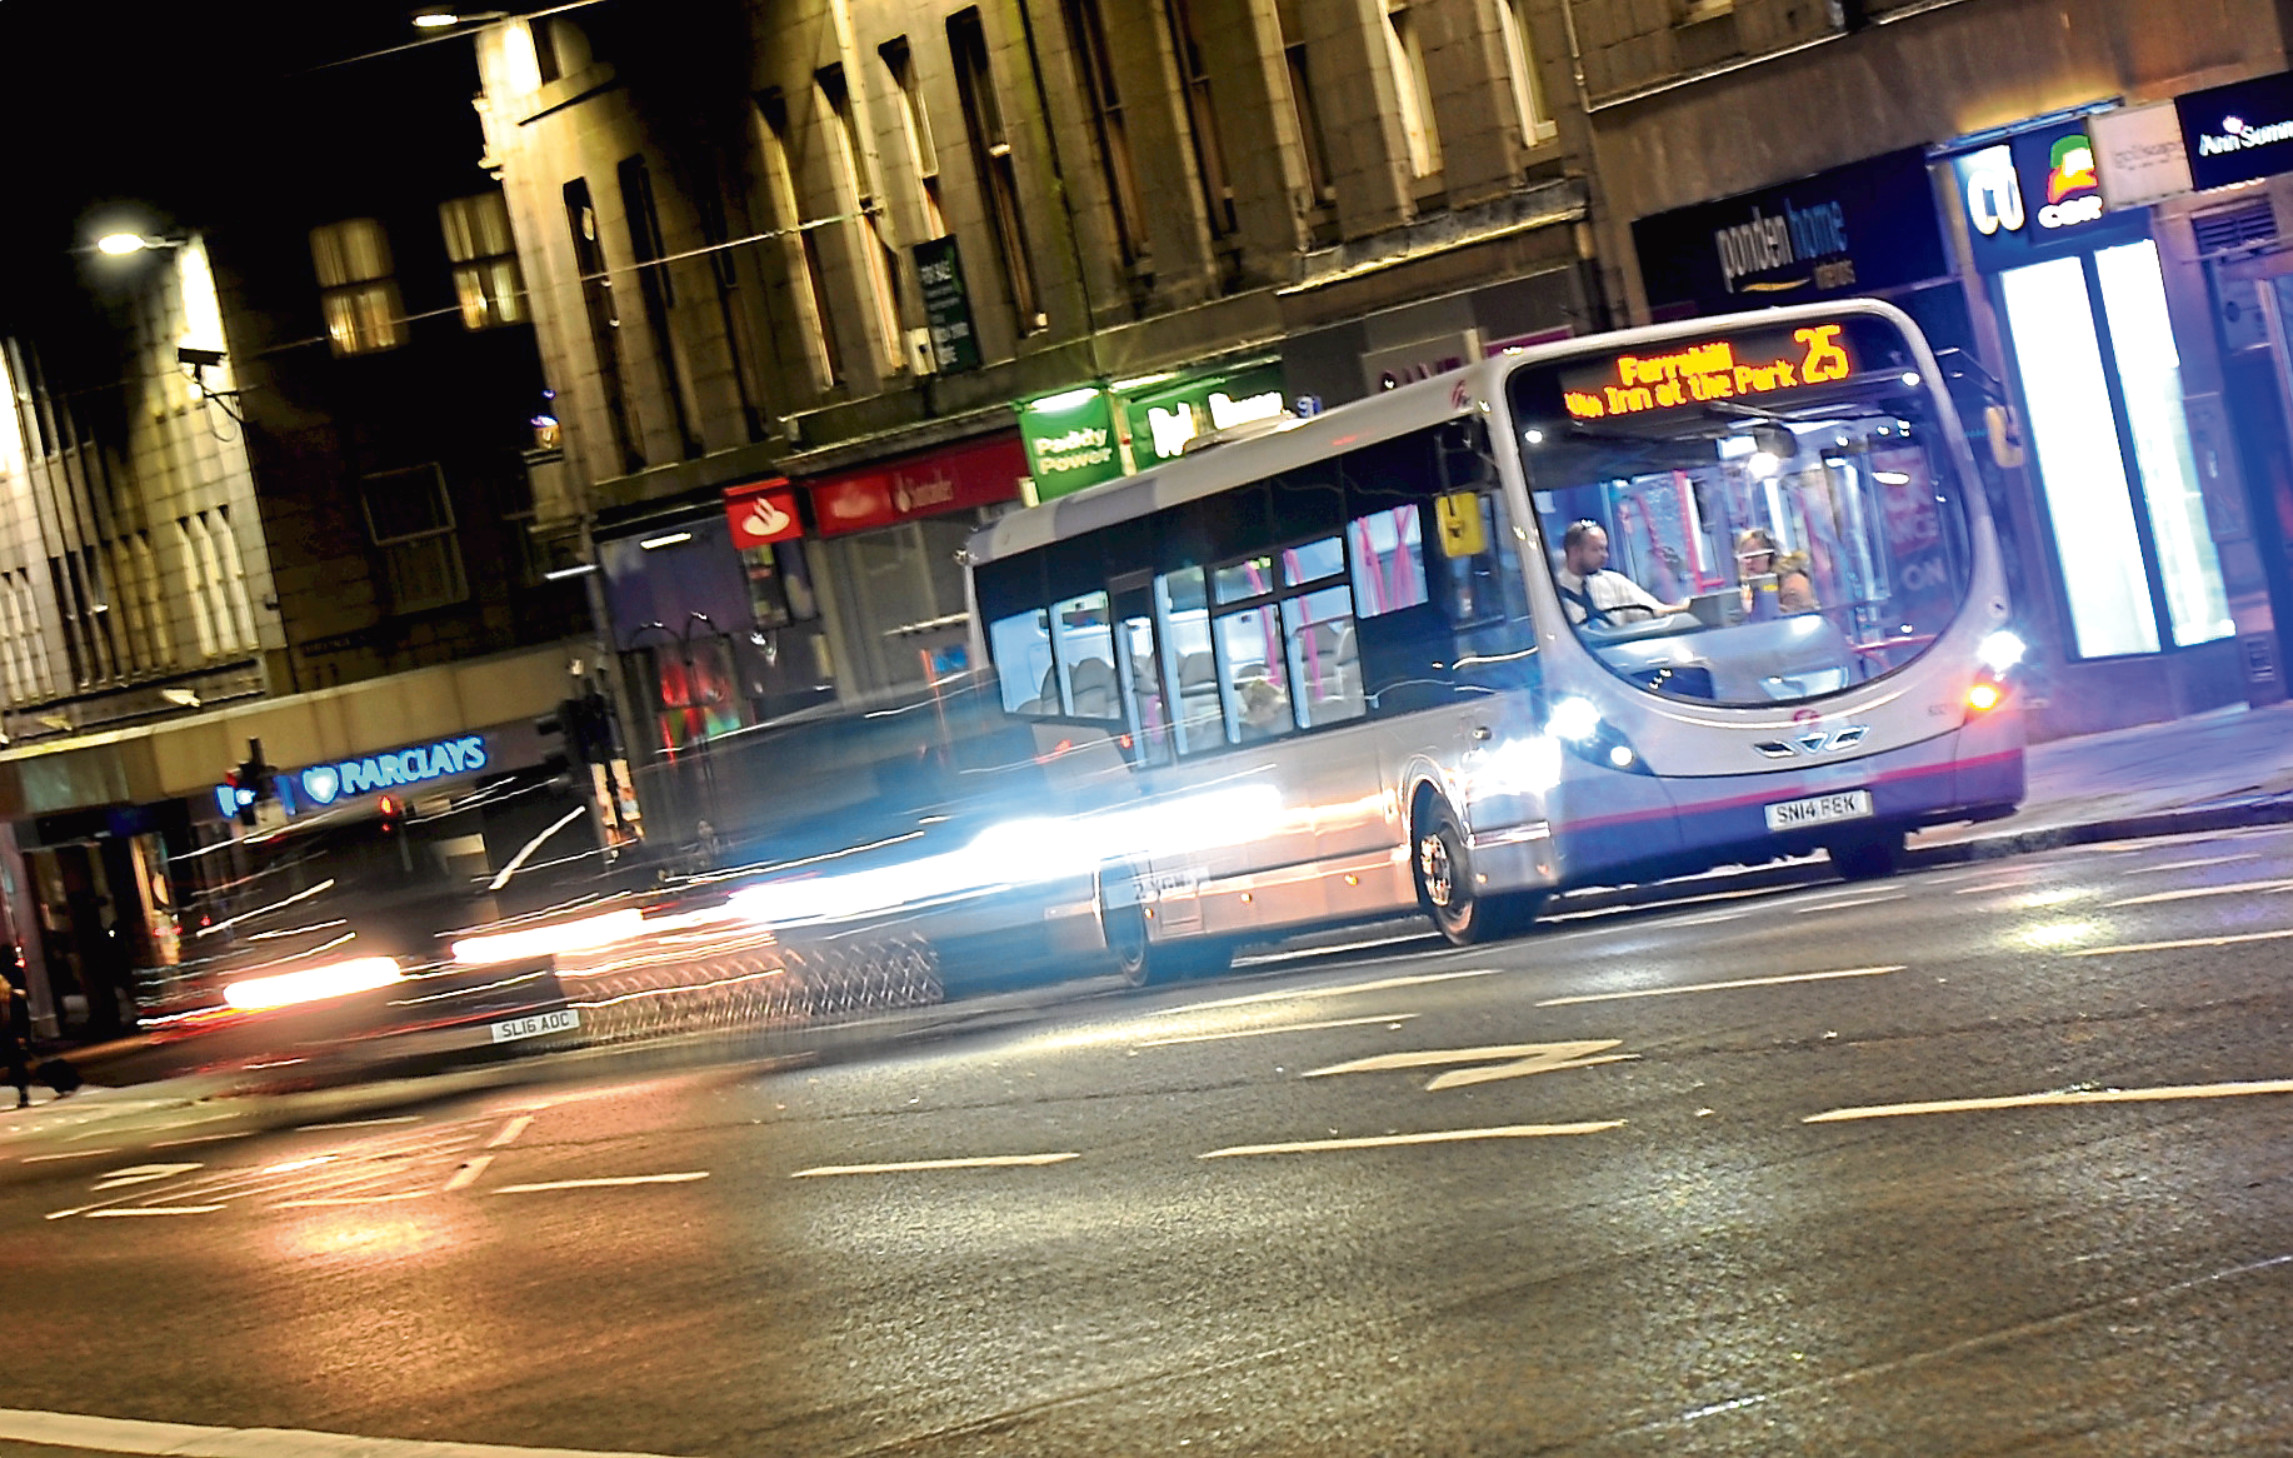 First Aberdeen has introduced a new contactless payment method on its buses